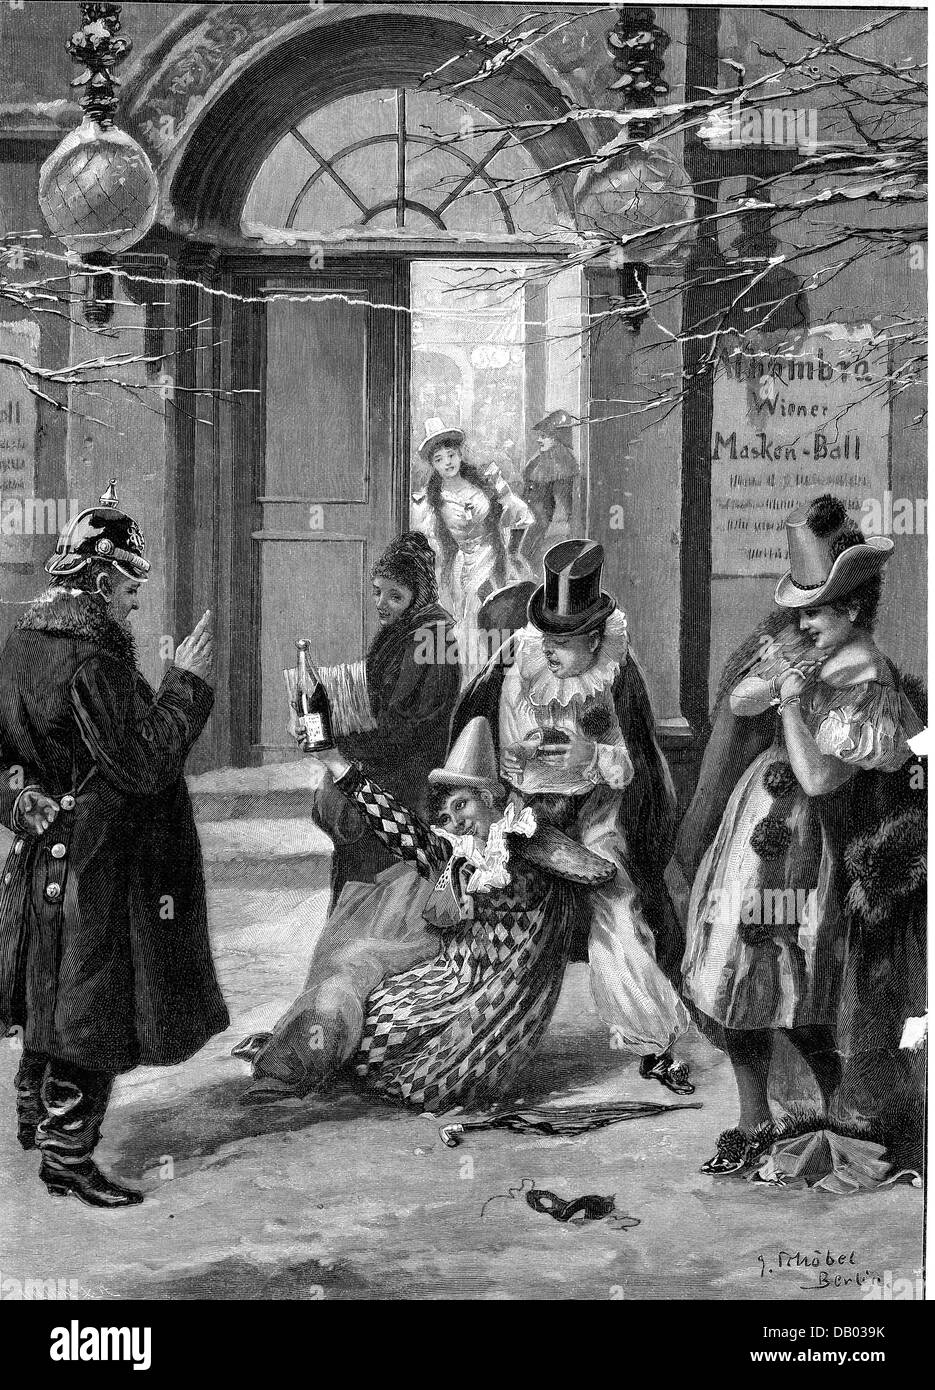 festivity, carnival, 'After the masked-ball', drunken woman is admonished by a police officer, wood engraving - Stock Image